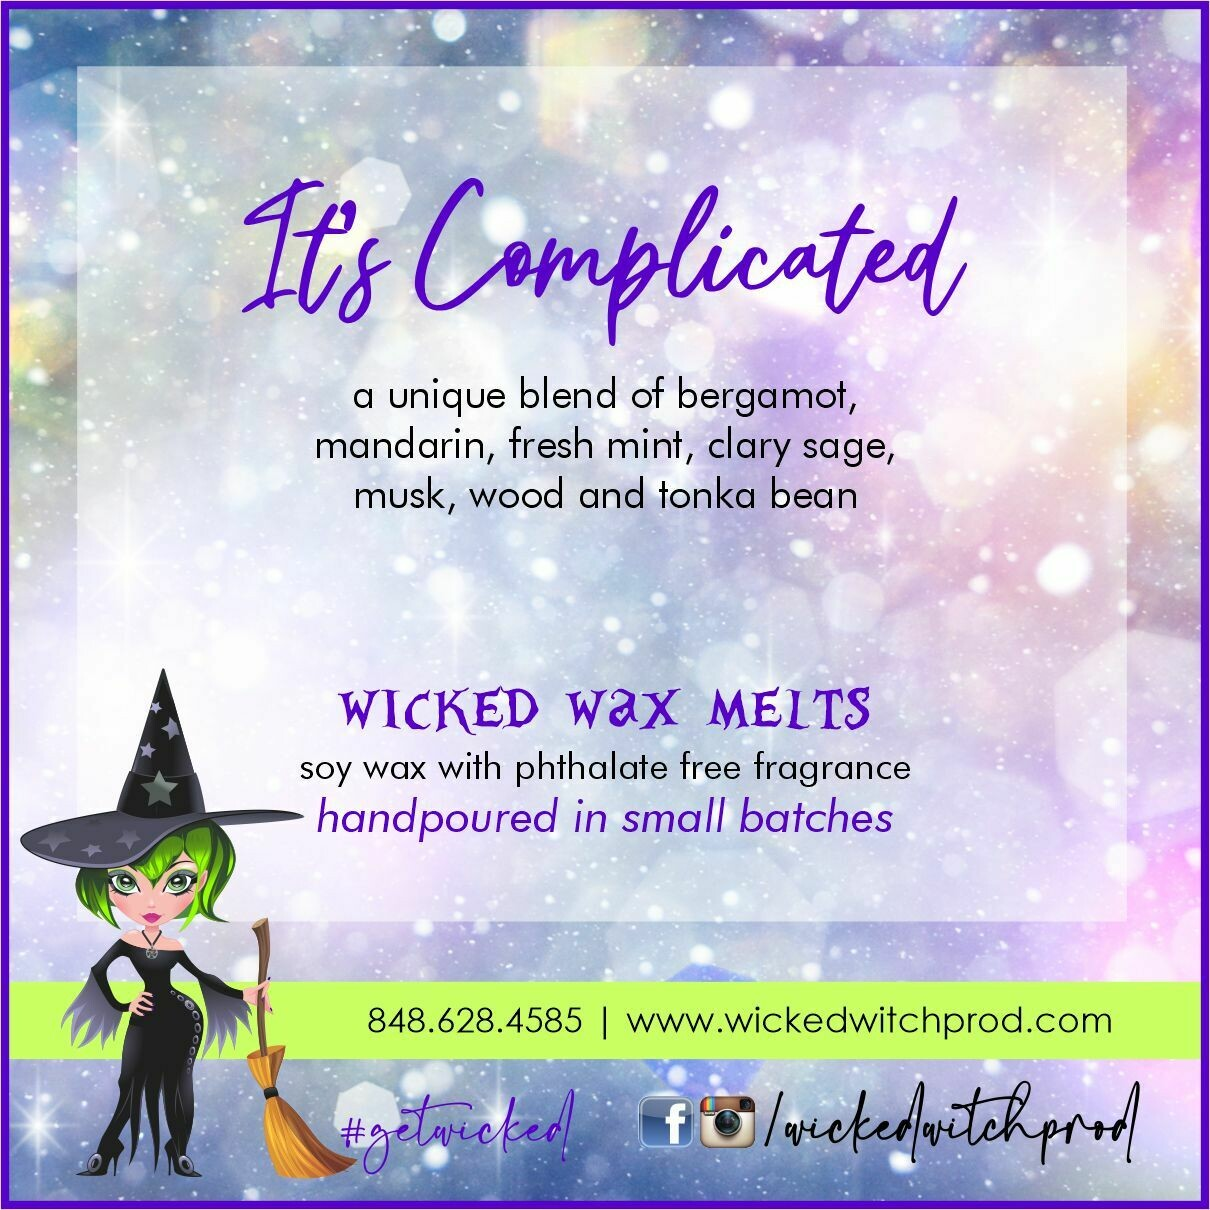 It's Complicated Wicked Wax Melts